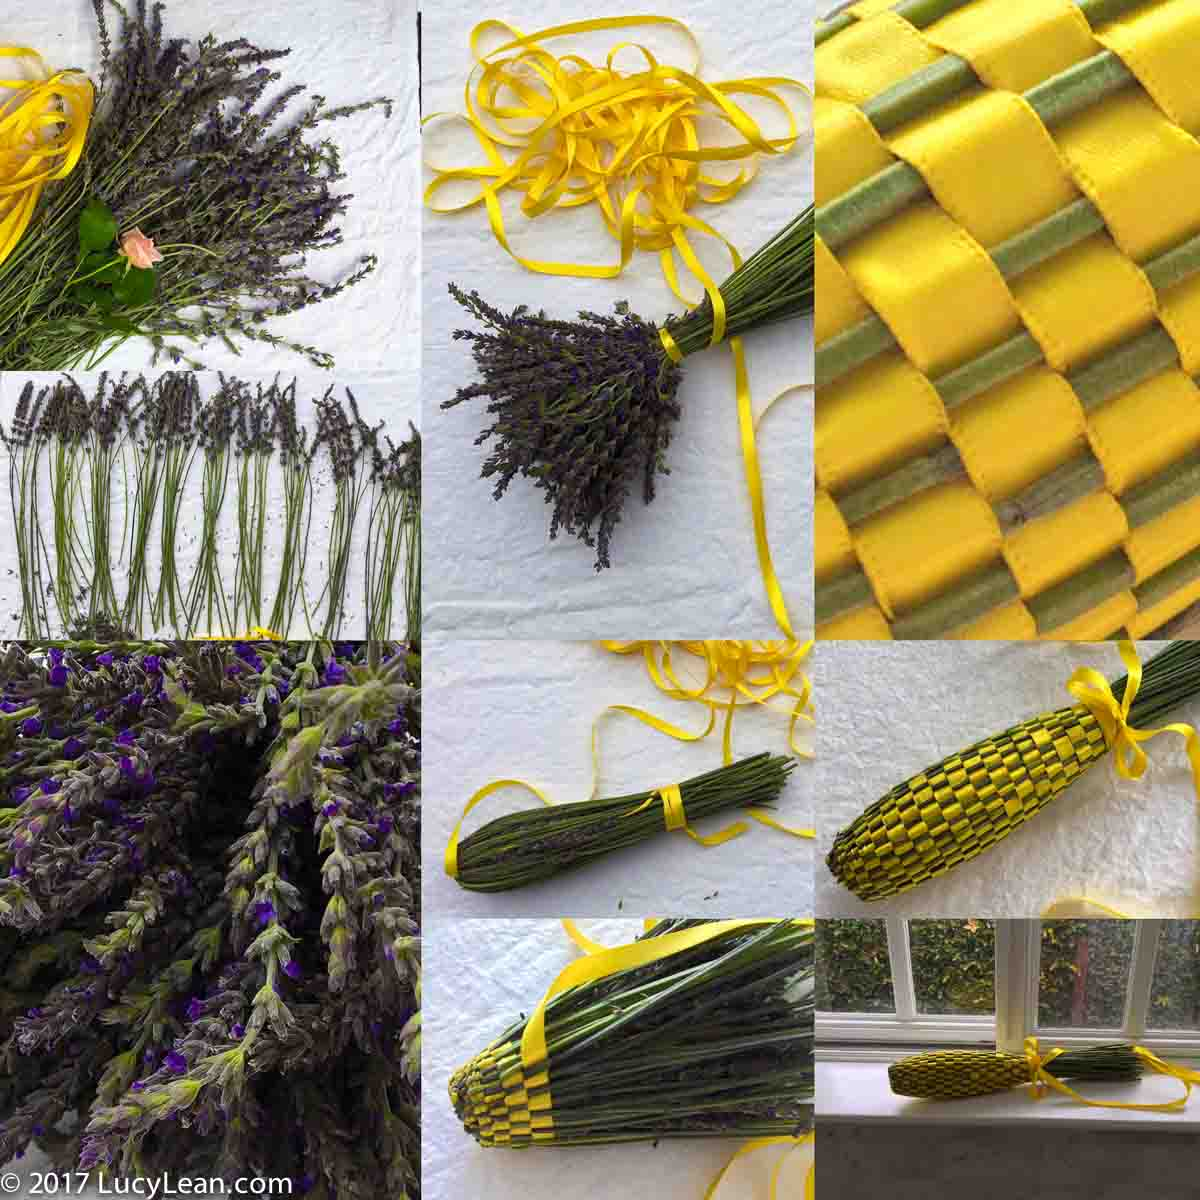 How to Make Fuseaux de Lavande – Lavender Wands to remind me of Provence